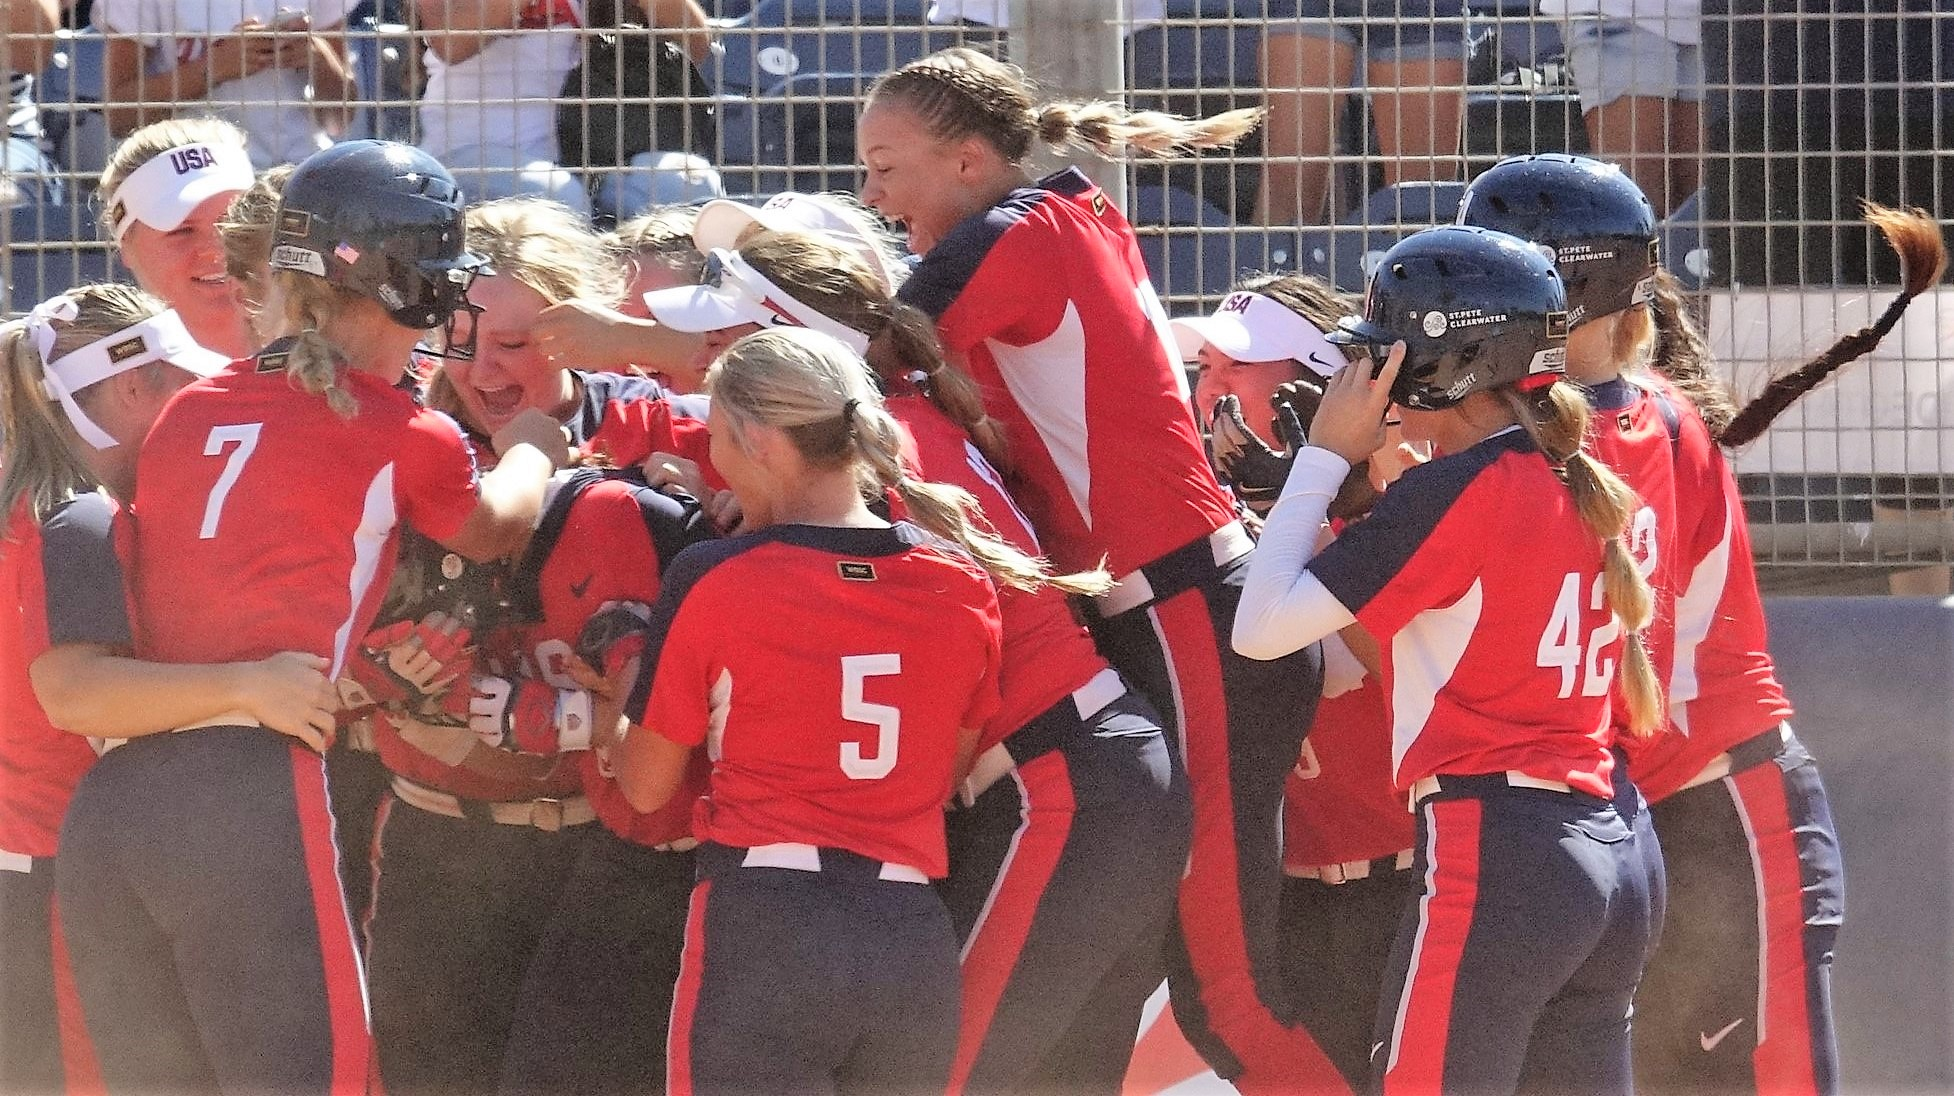 The USA tied it on a pinch-hit home run by Francesca Hammoude